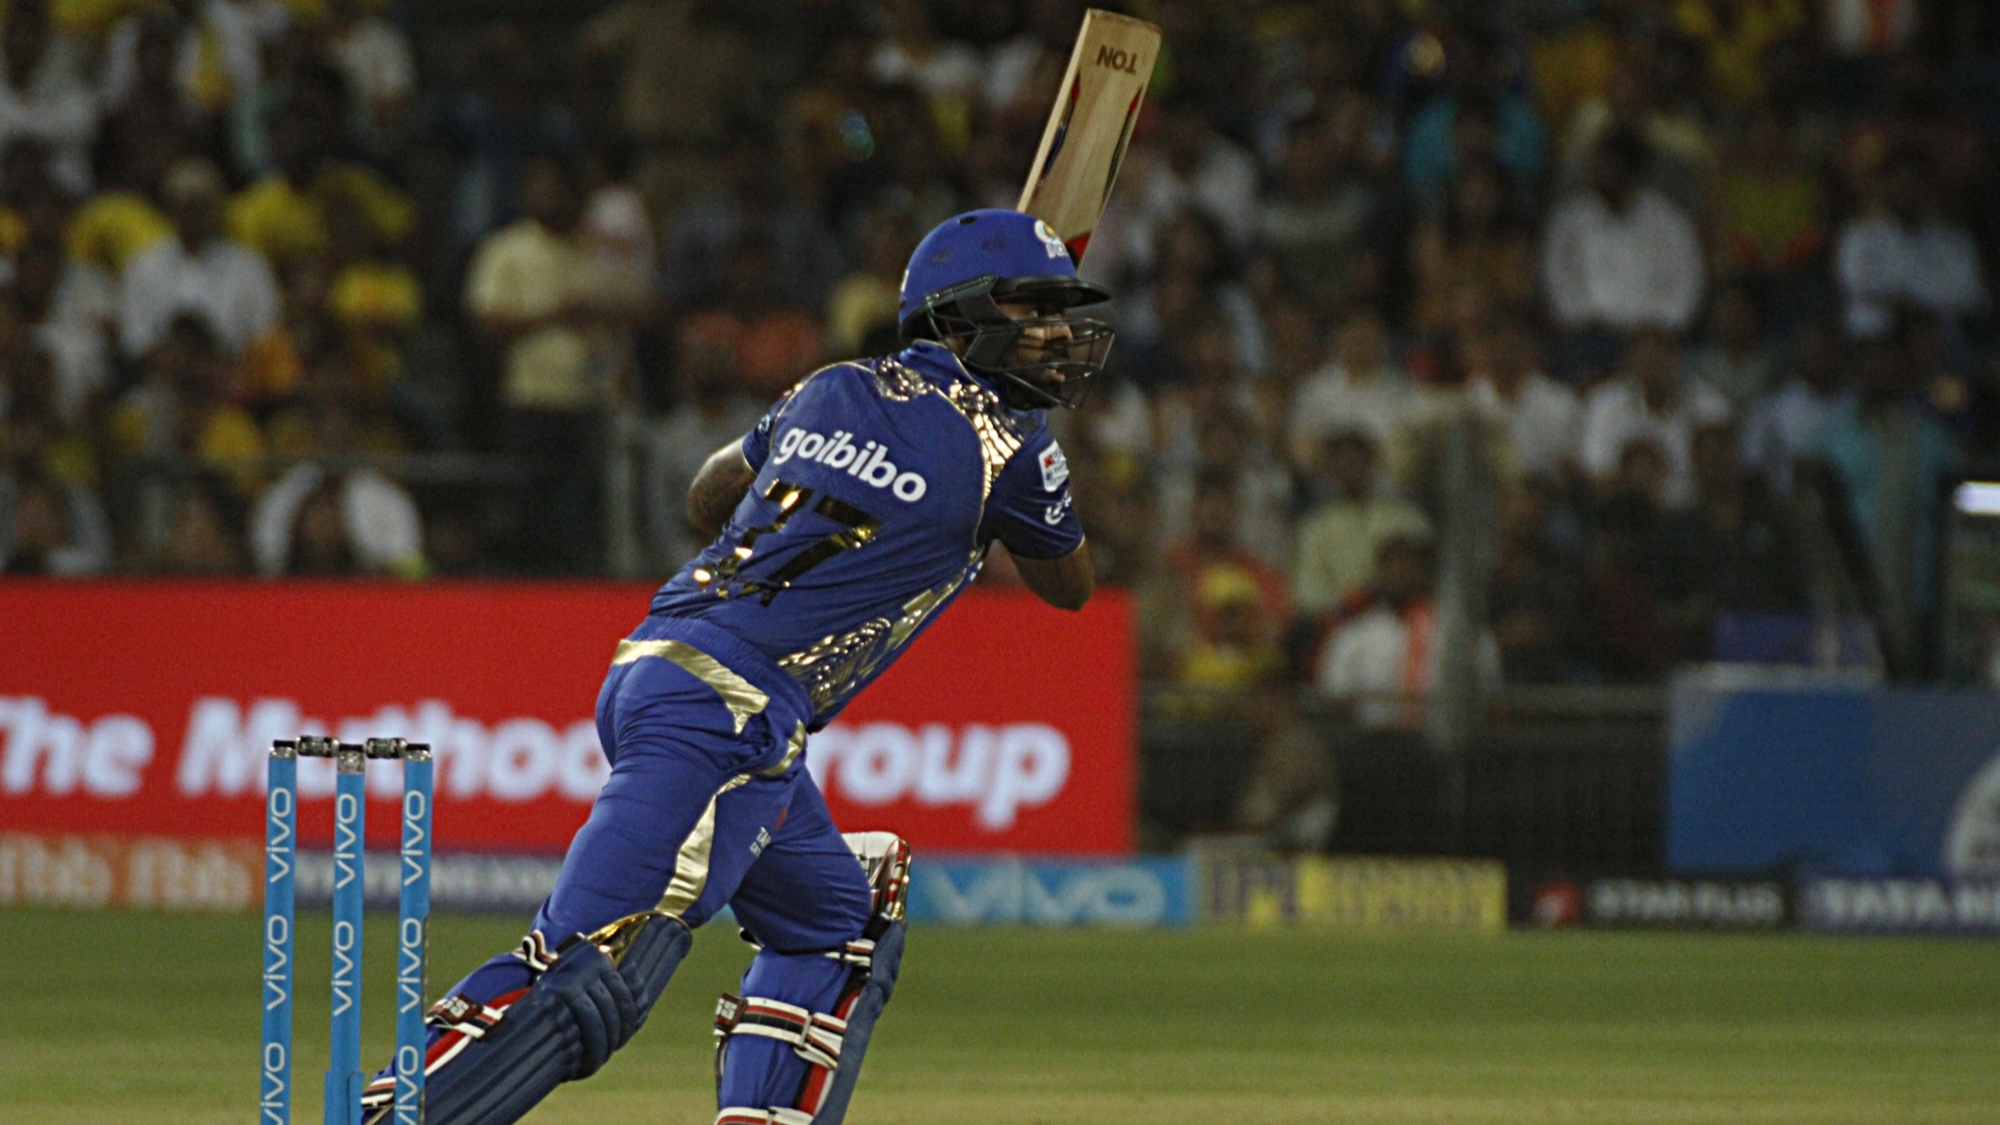 IPL 2018: Flexible Suryakumar Yadav enjoying his opening role for Mumbai Indians